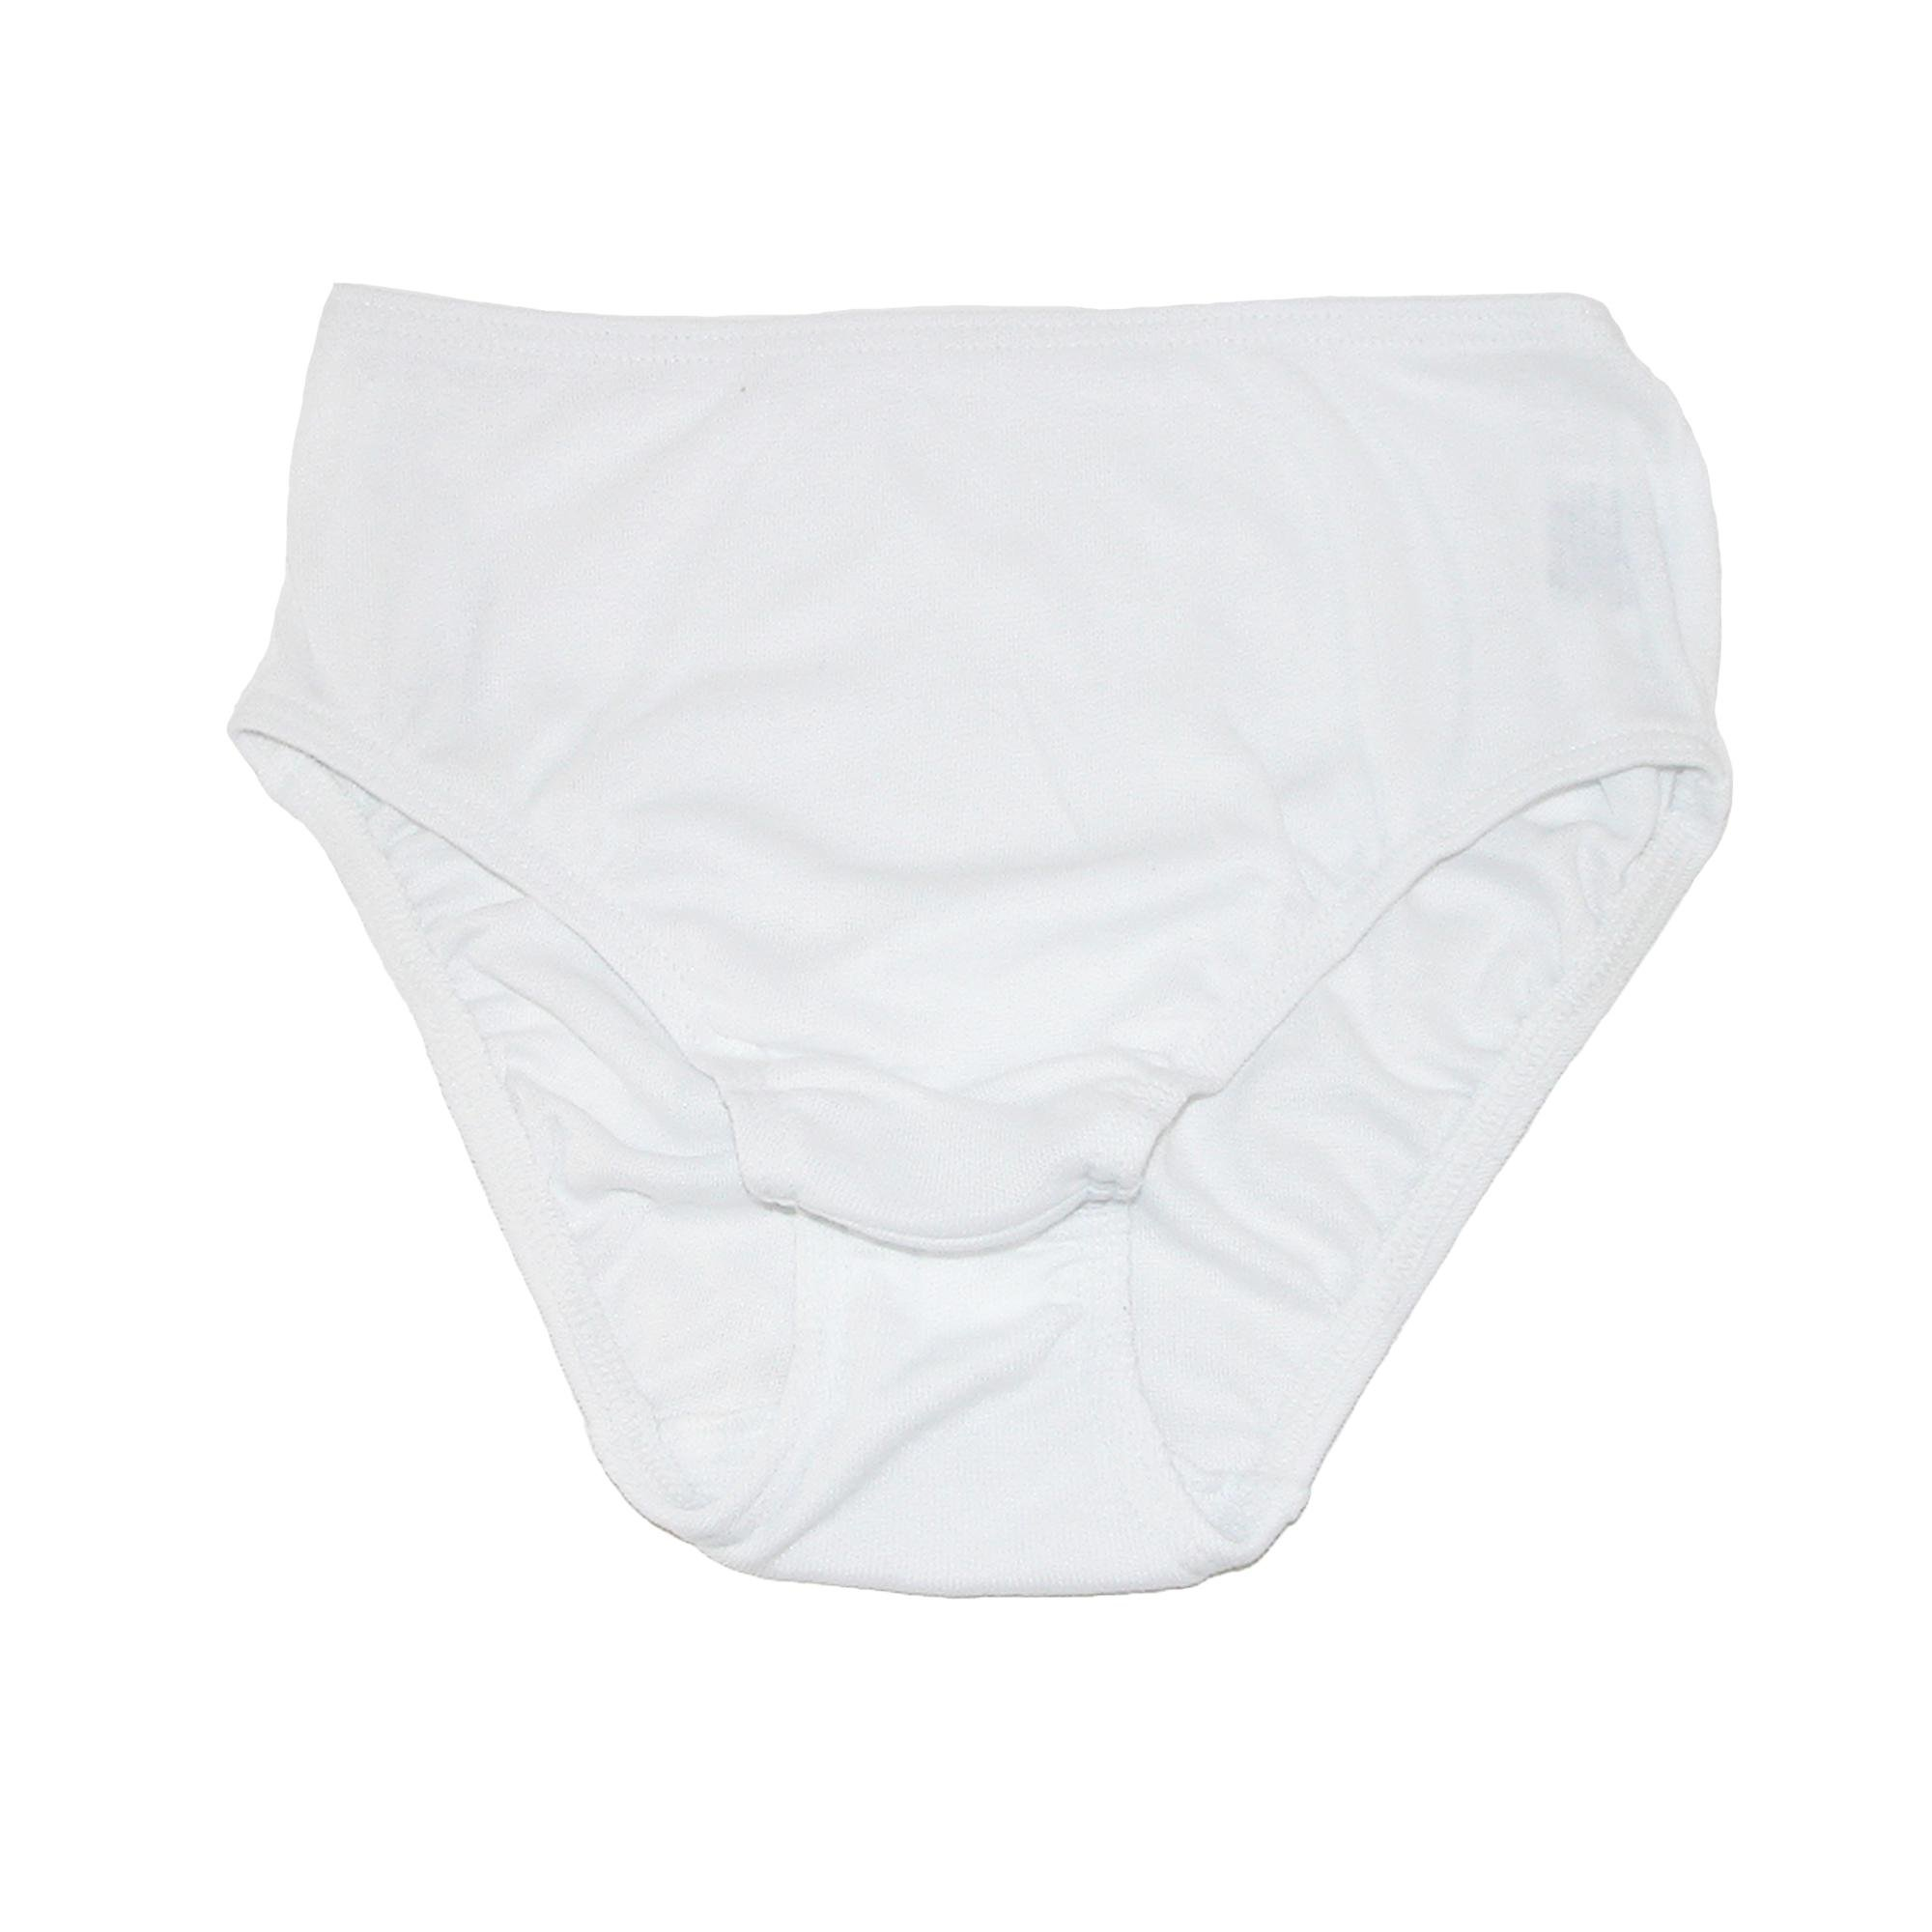 Tilley Women's TU11 High Cut Travel Briefs White L